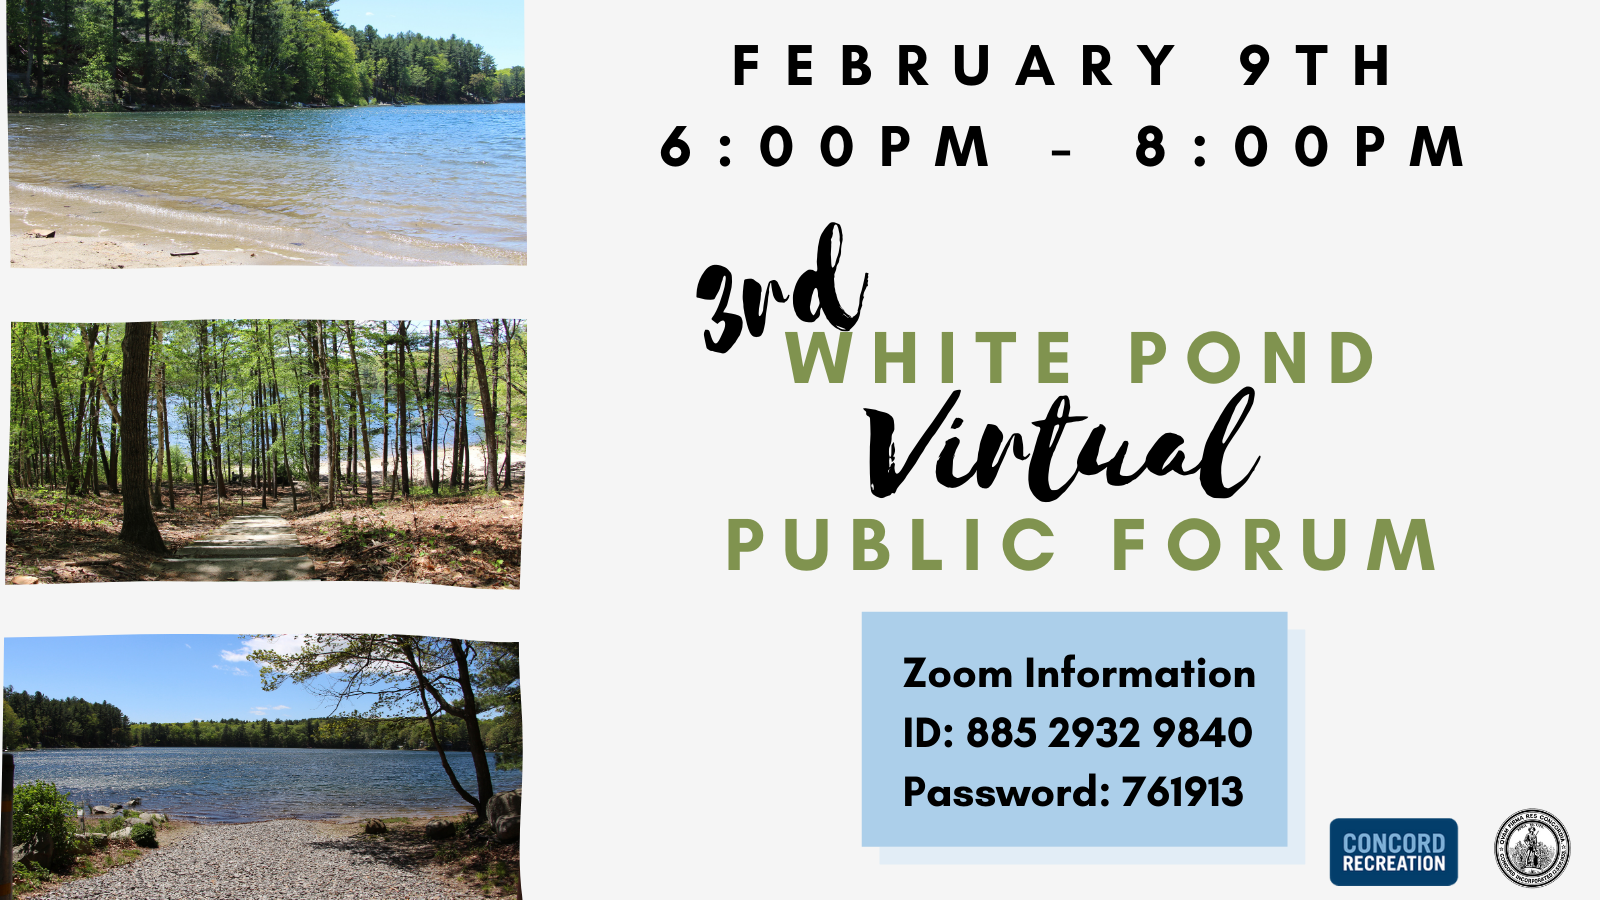 3rd white pond public forum February 9th 6pm-8pm